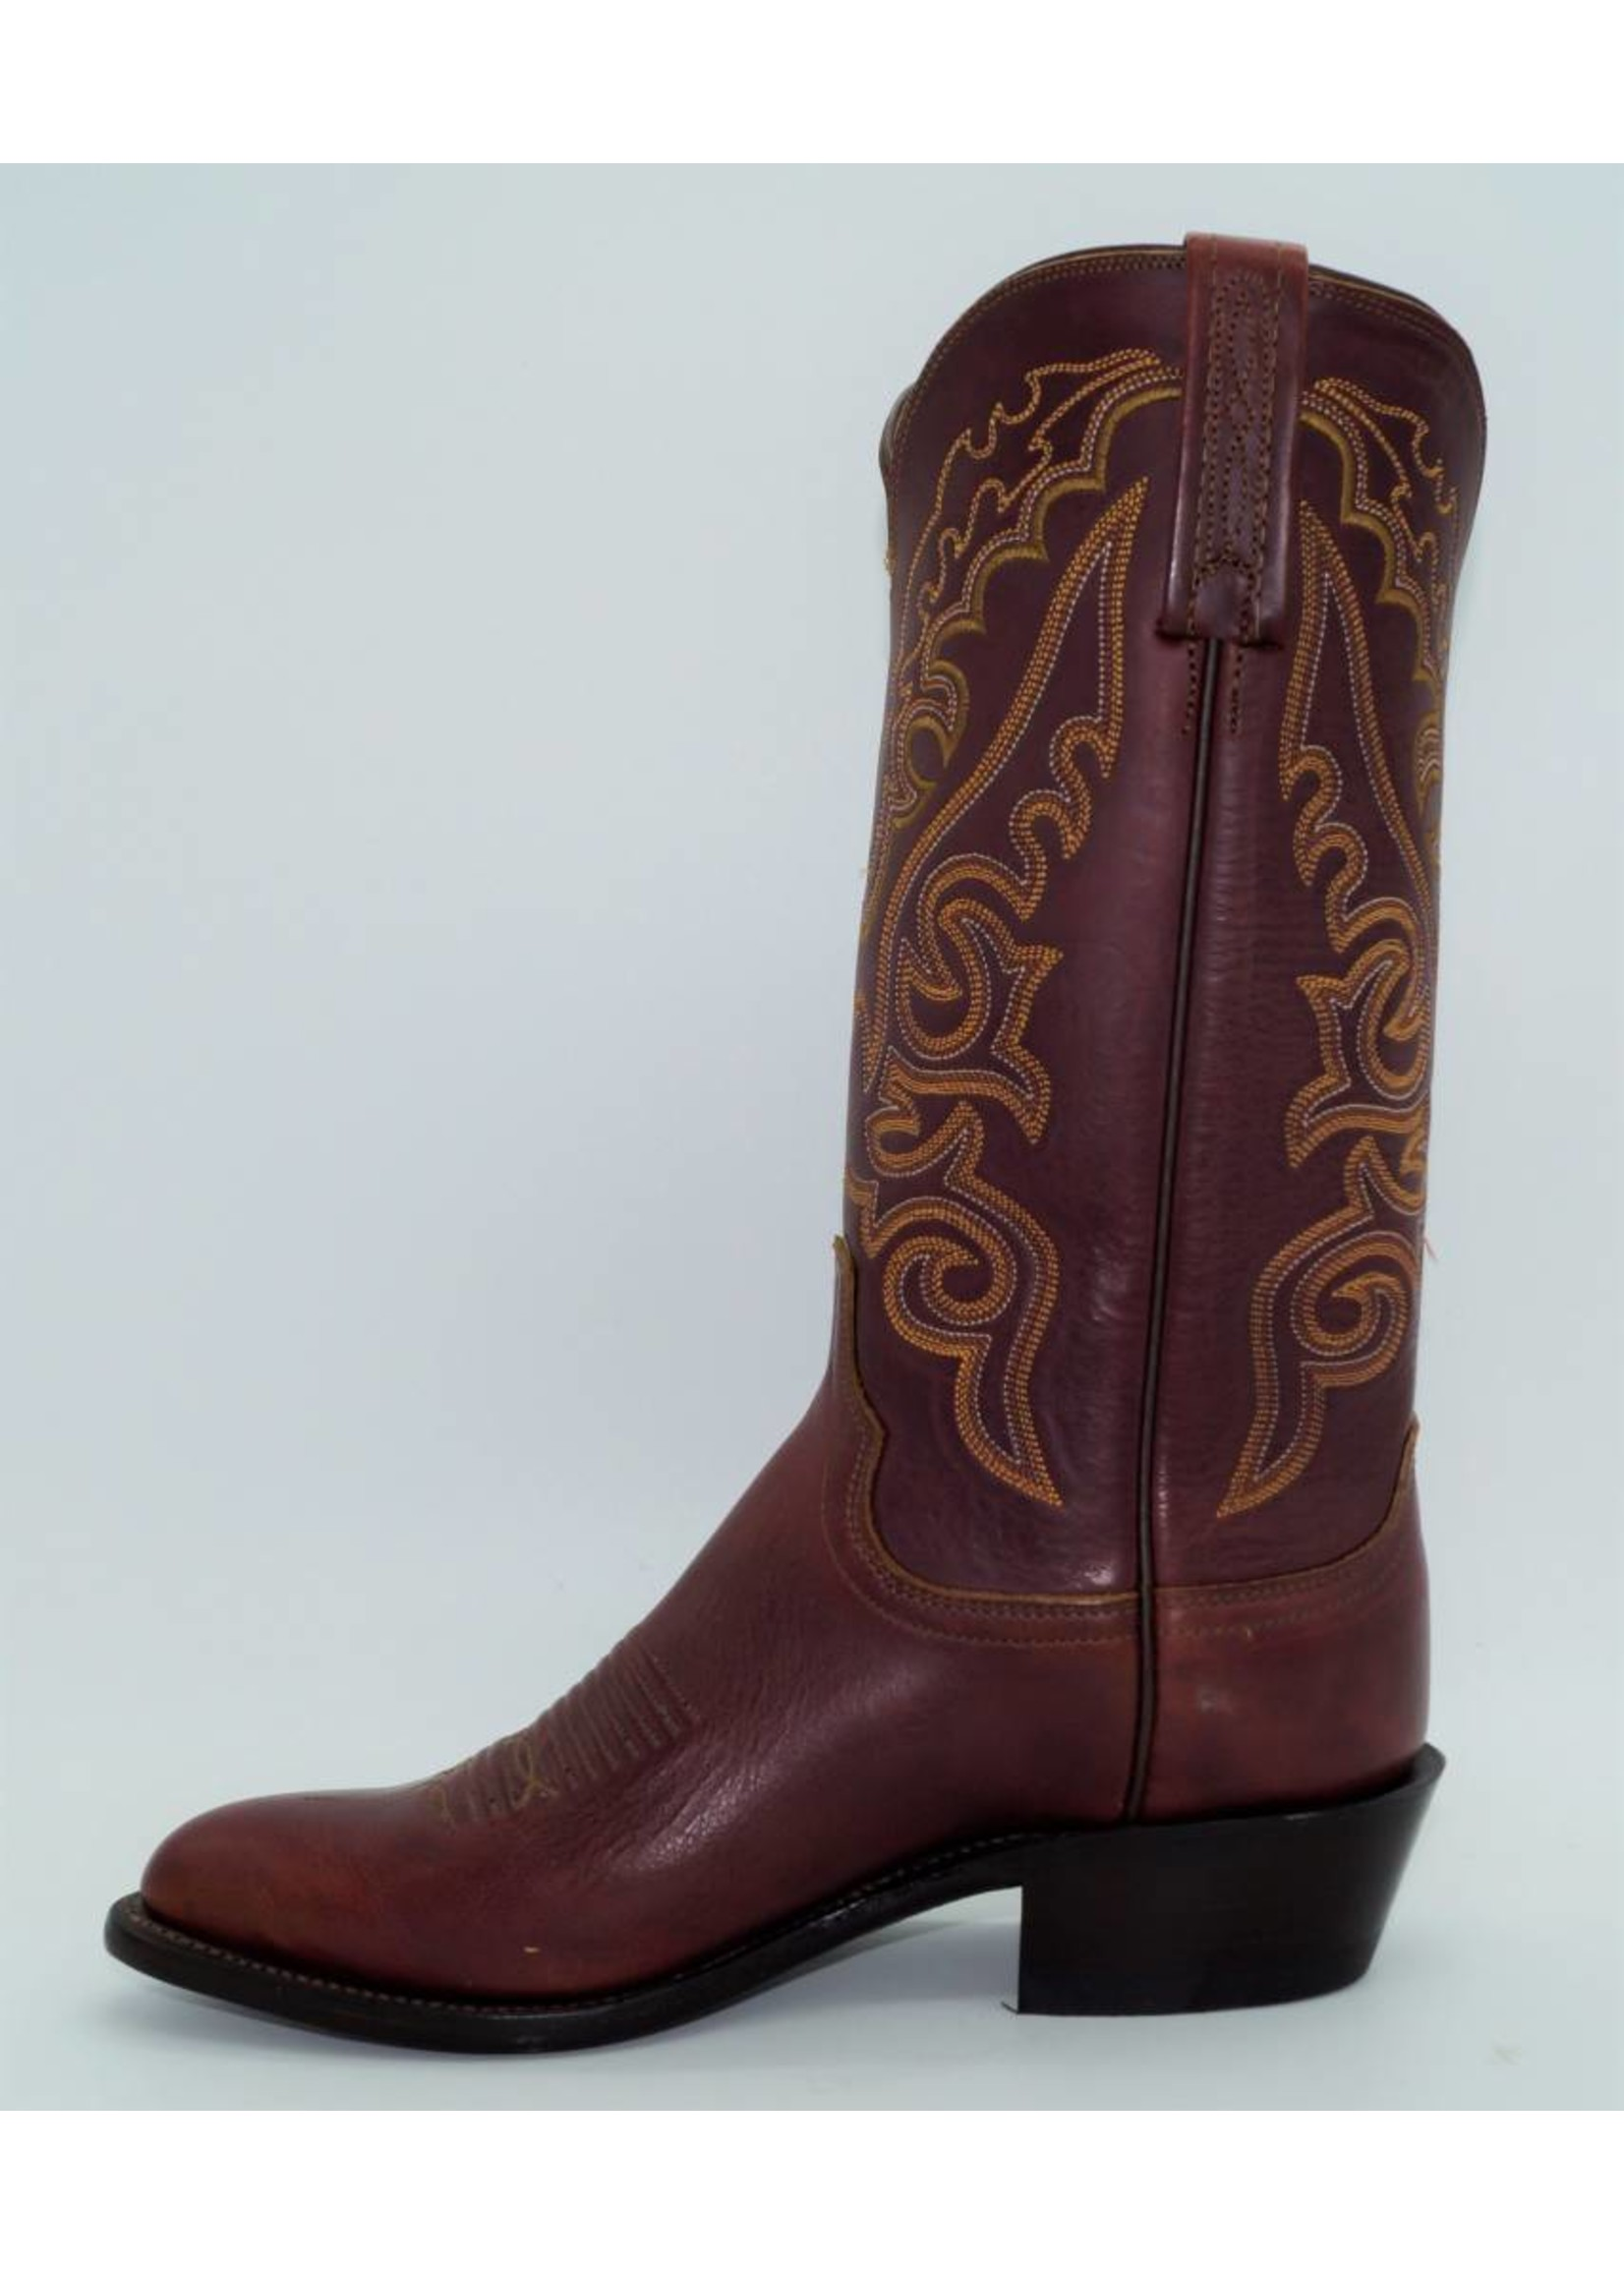 Lucchese Men's Brown Western Boots N1531-J4